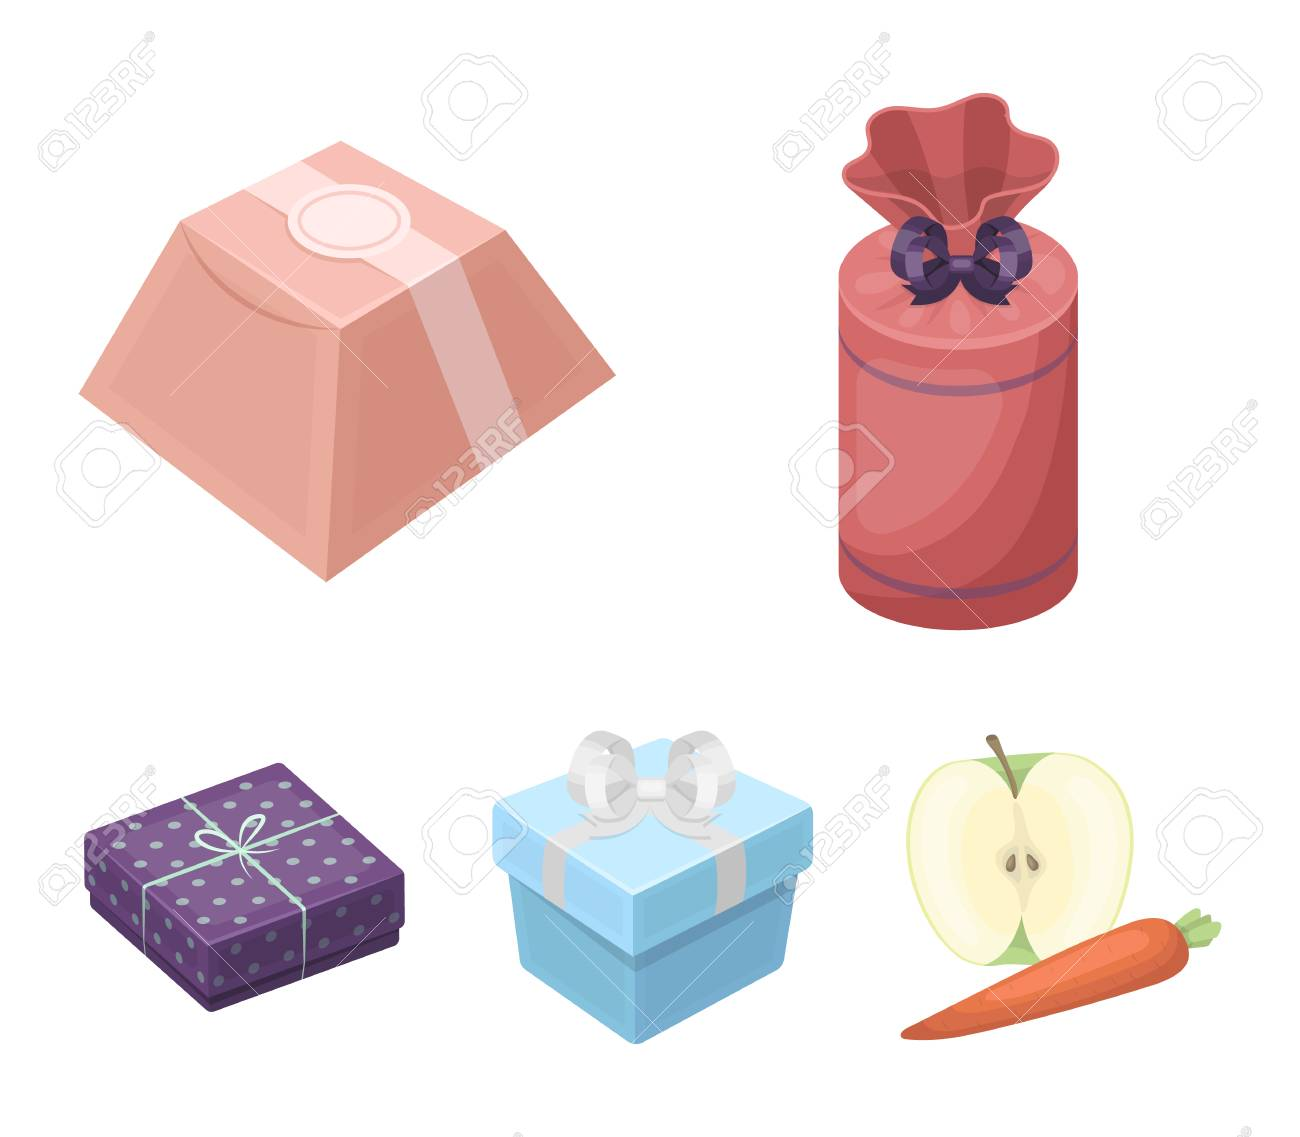 Gift box with bow gift bag.Gifts and certificates set collection icons in cartoon  sc 1 st  123RF.com & Gift Box With Bow Gift Bag.Gifts And Certificates Set Collection ...